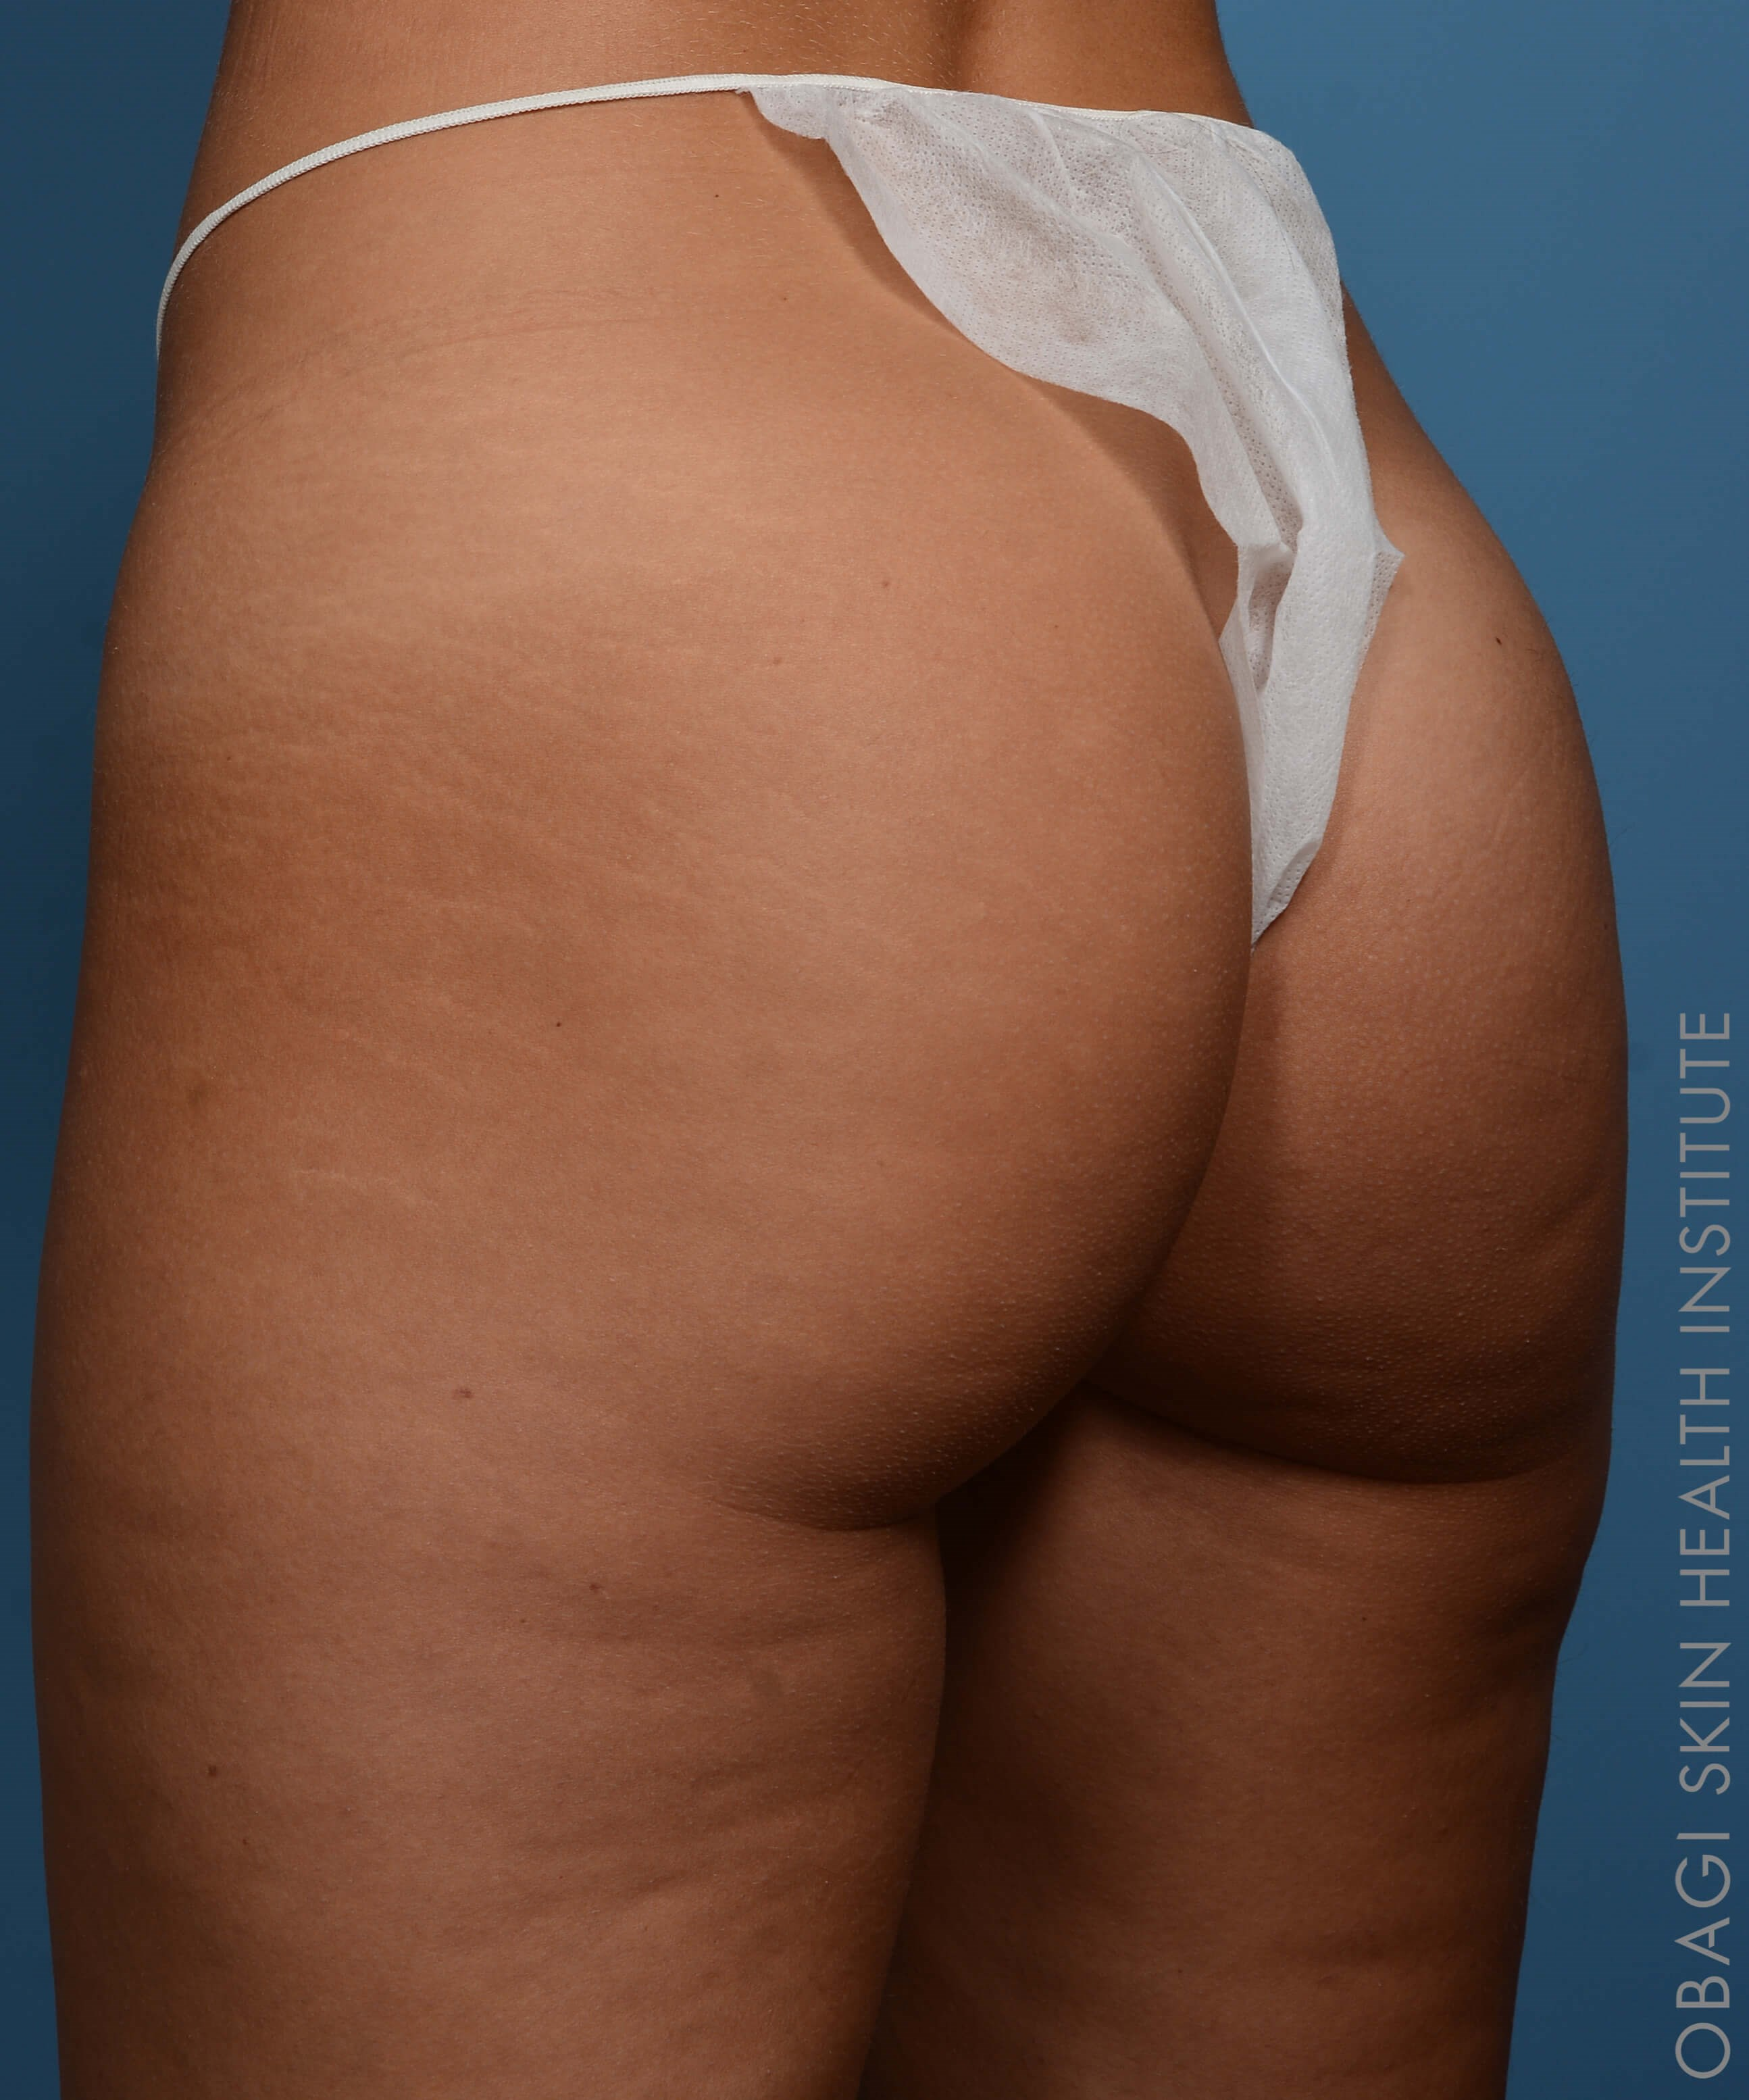 Sculptra Butt Lift - Left View Before Sculptra Butt Lift